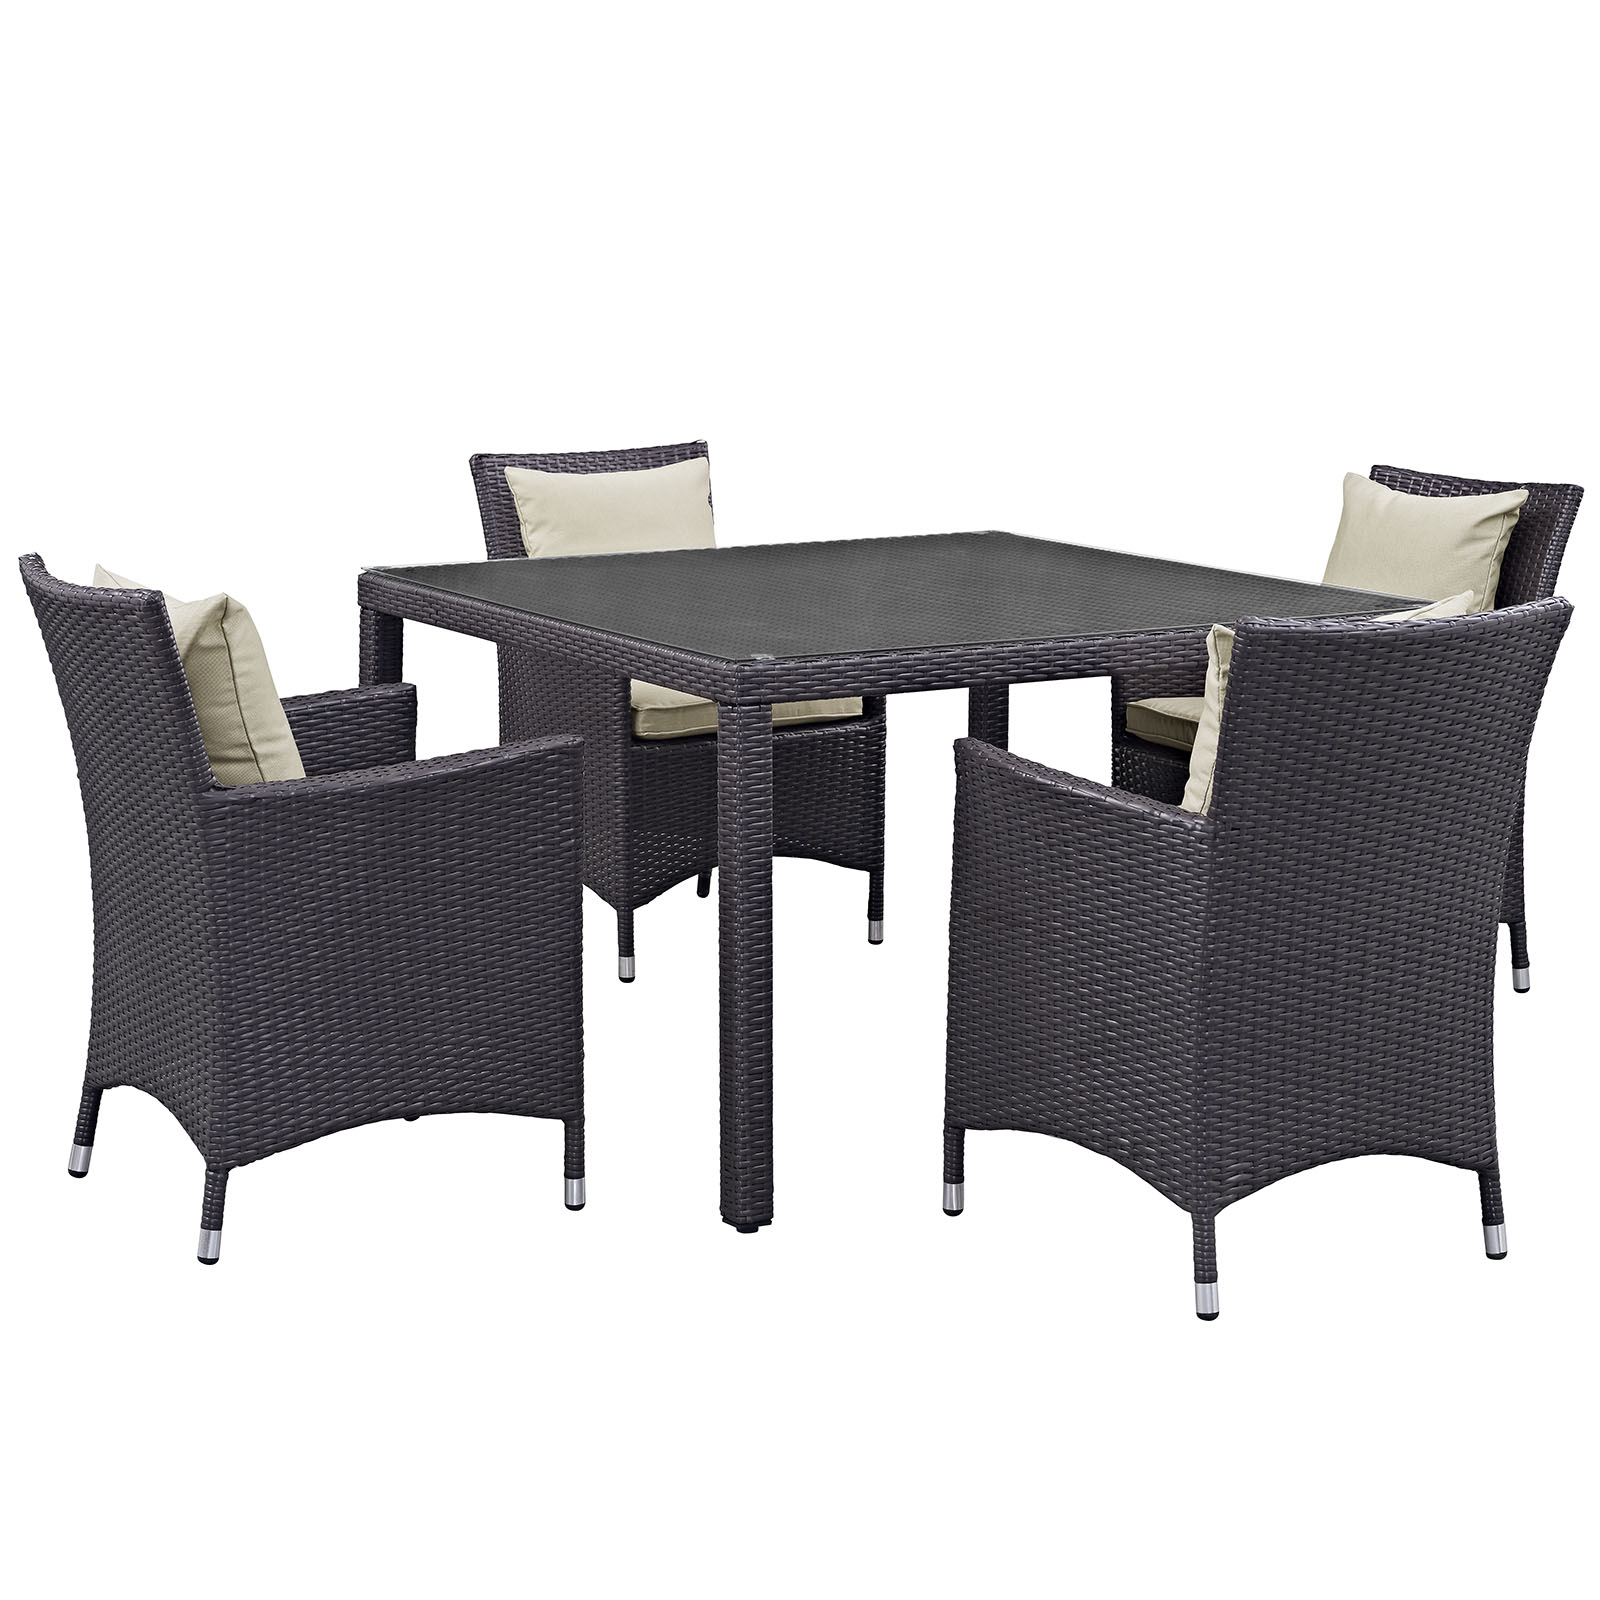 Modern Contemporary Urban Design Outdoor Patio Balcony Five PCS Dining Chairs and Table Set, Beige, Rattan